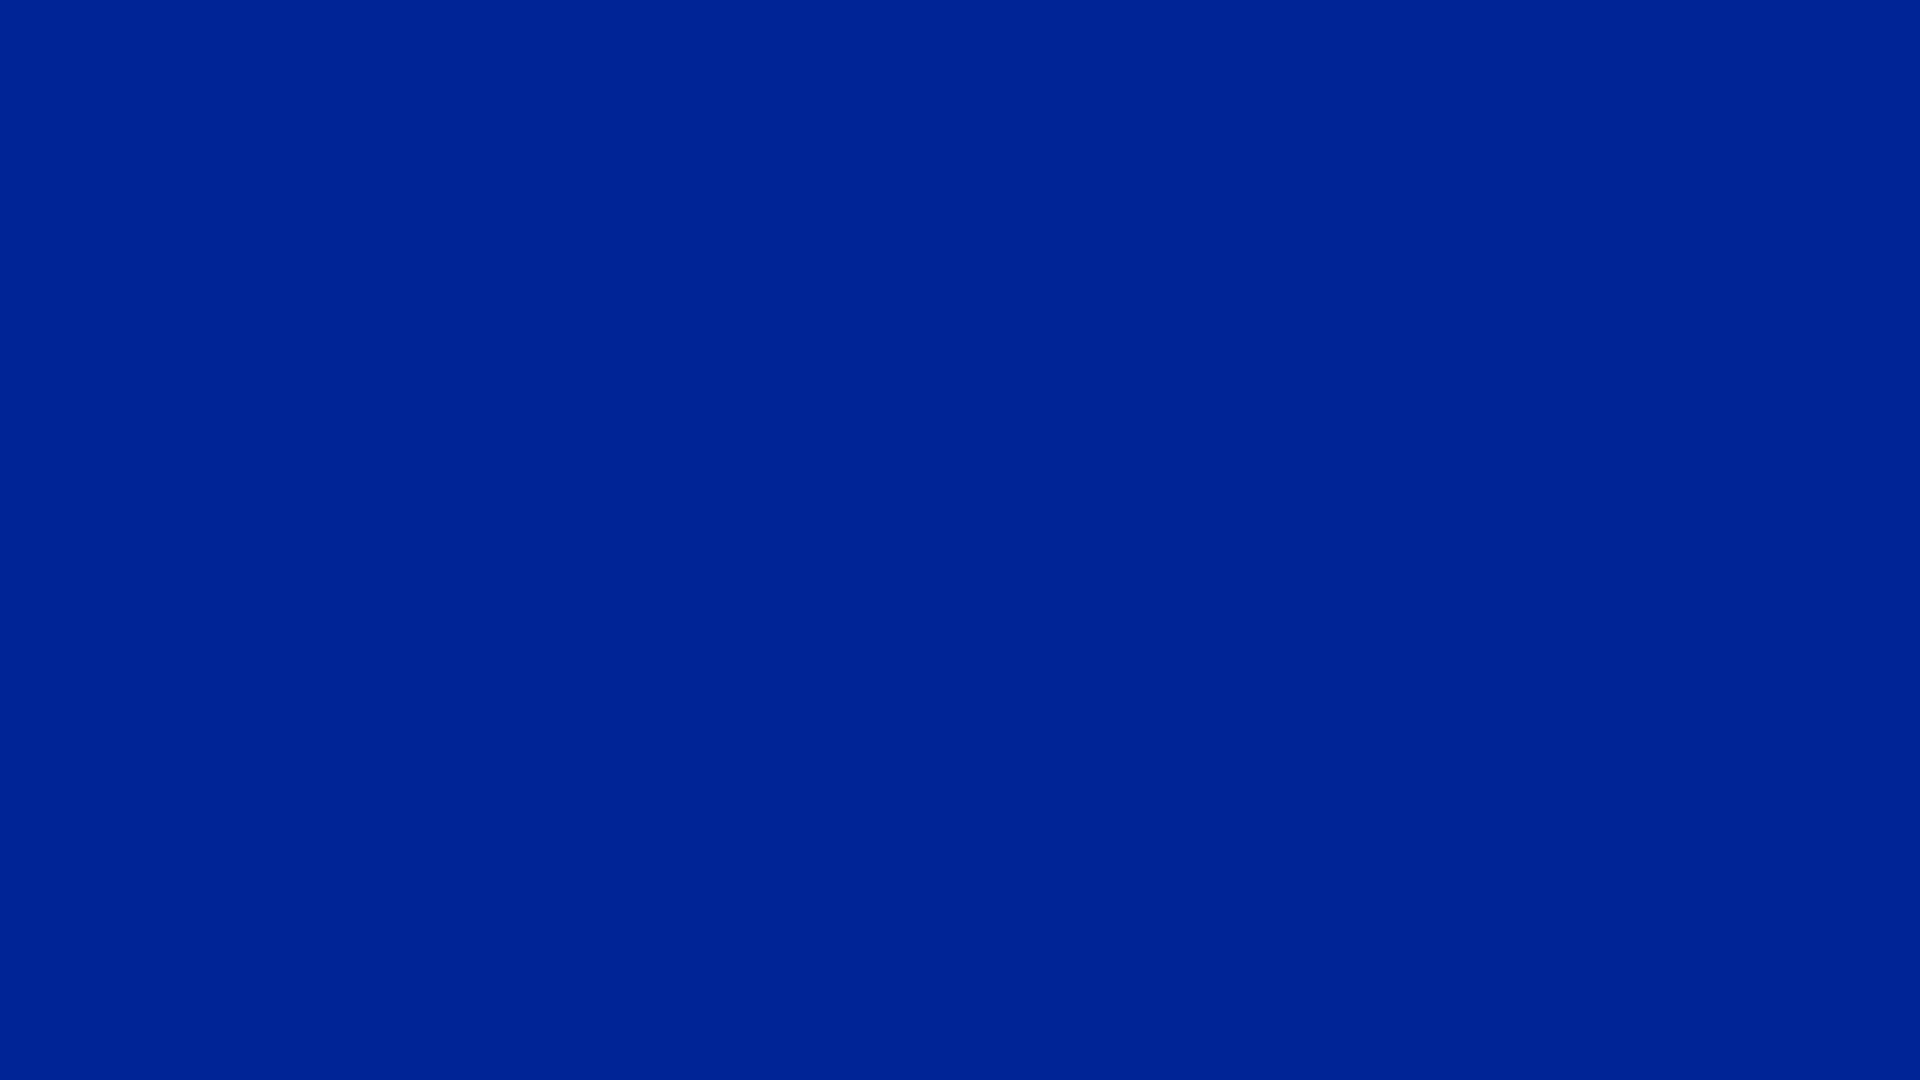 1920x1080 Imperial Blue Solid Color Background